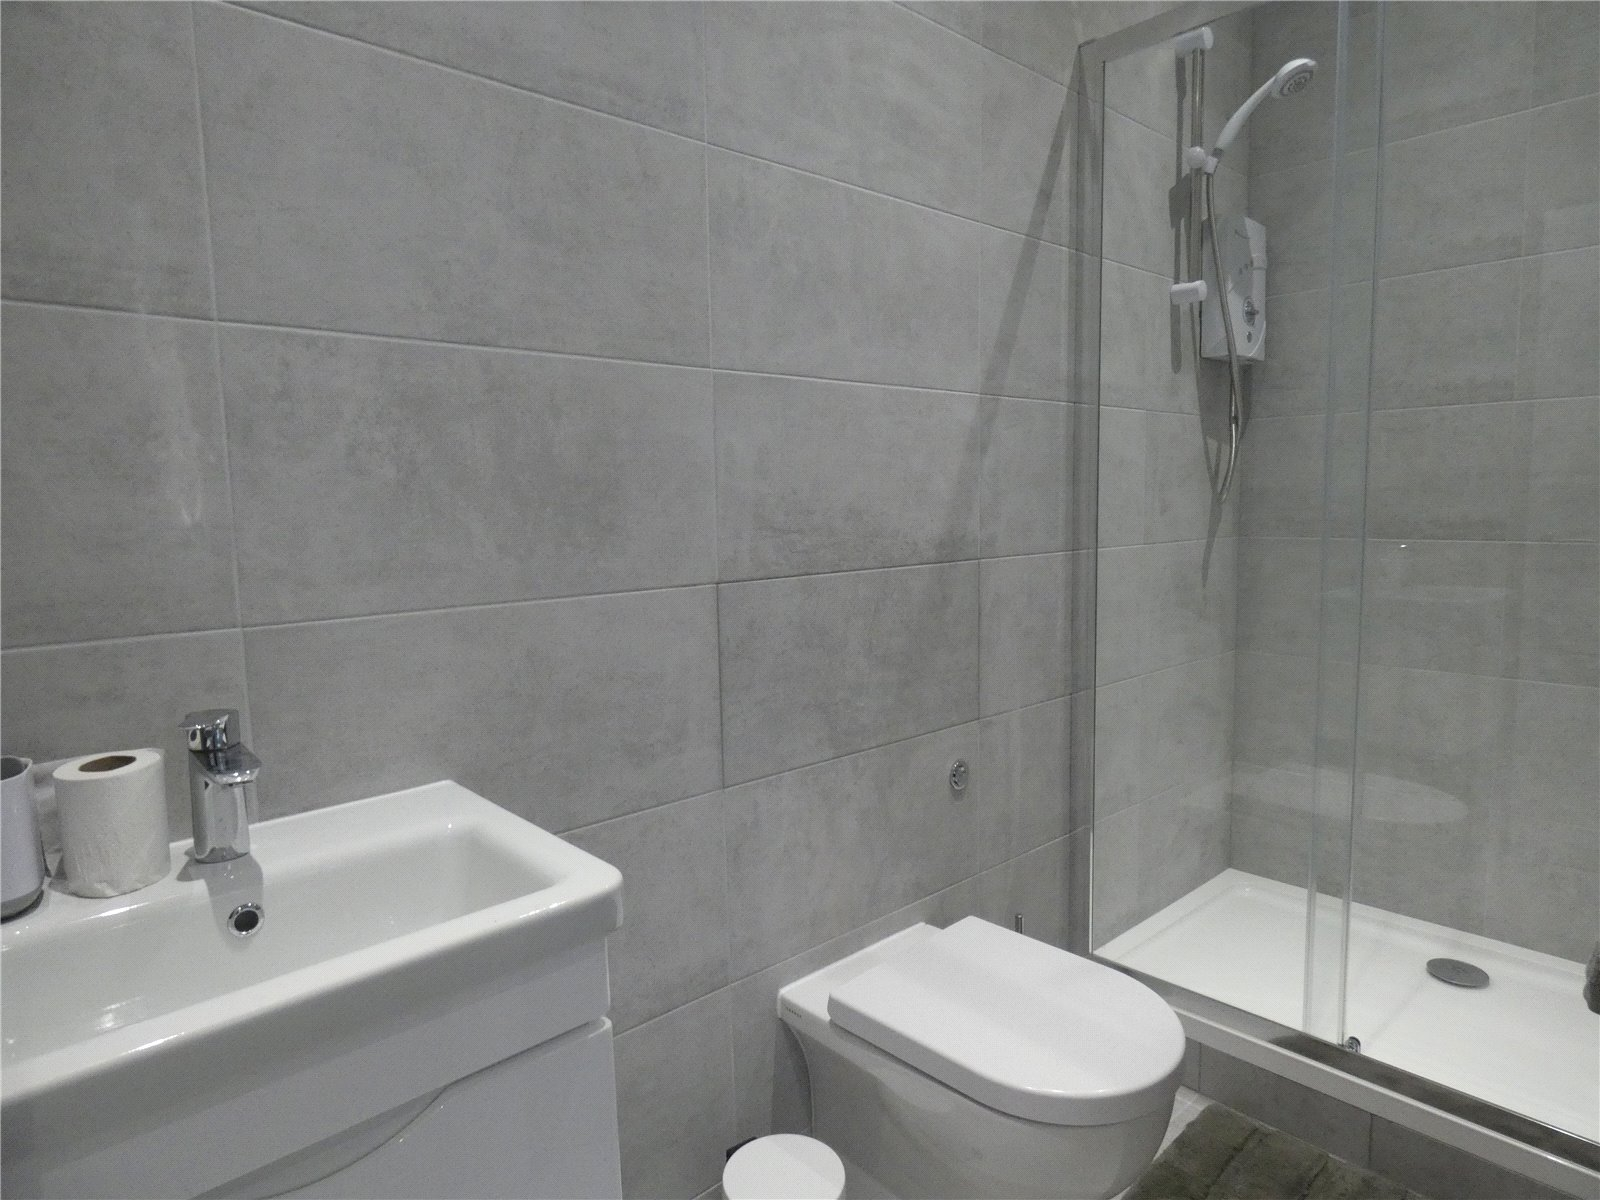 Apartment to rent in Whetstone, N20 9HW  - Property Image 4